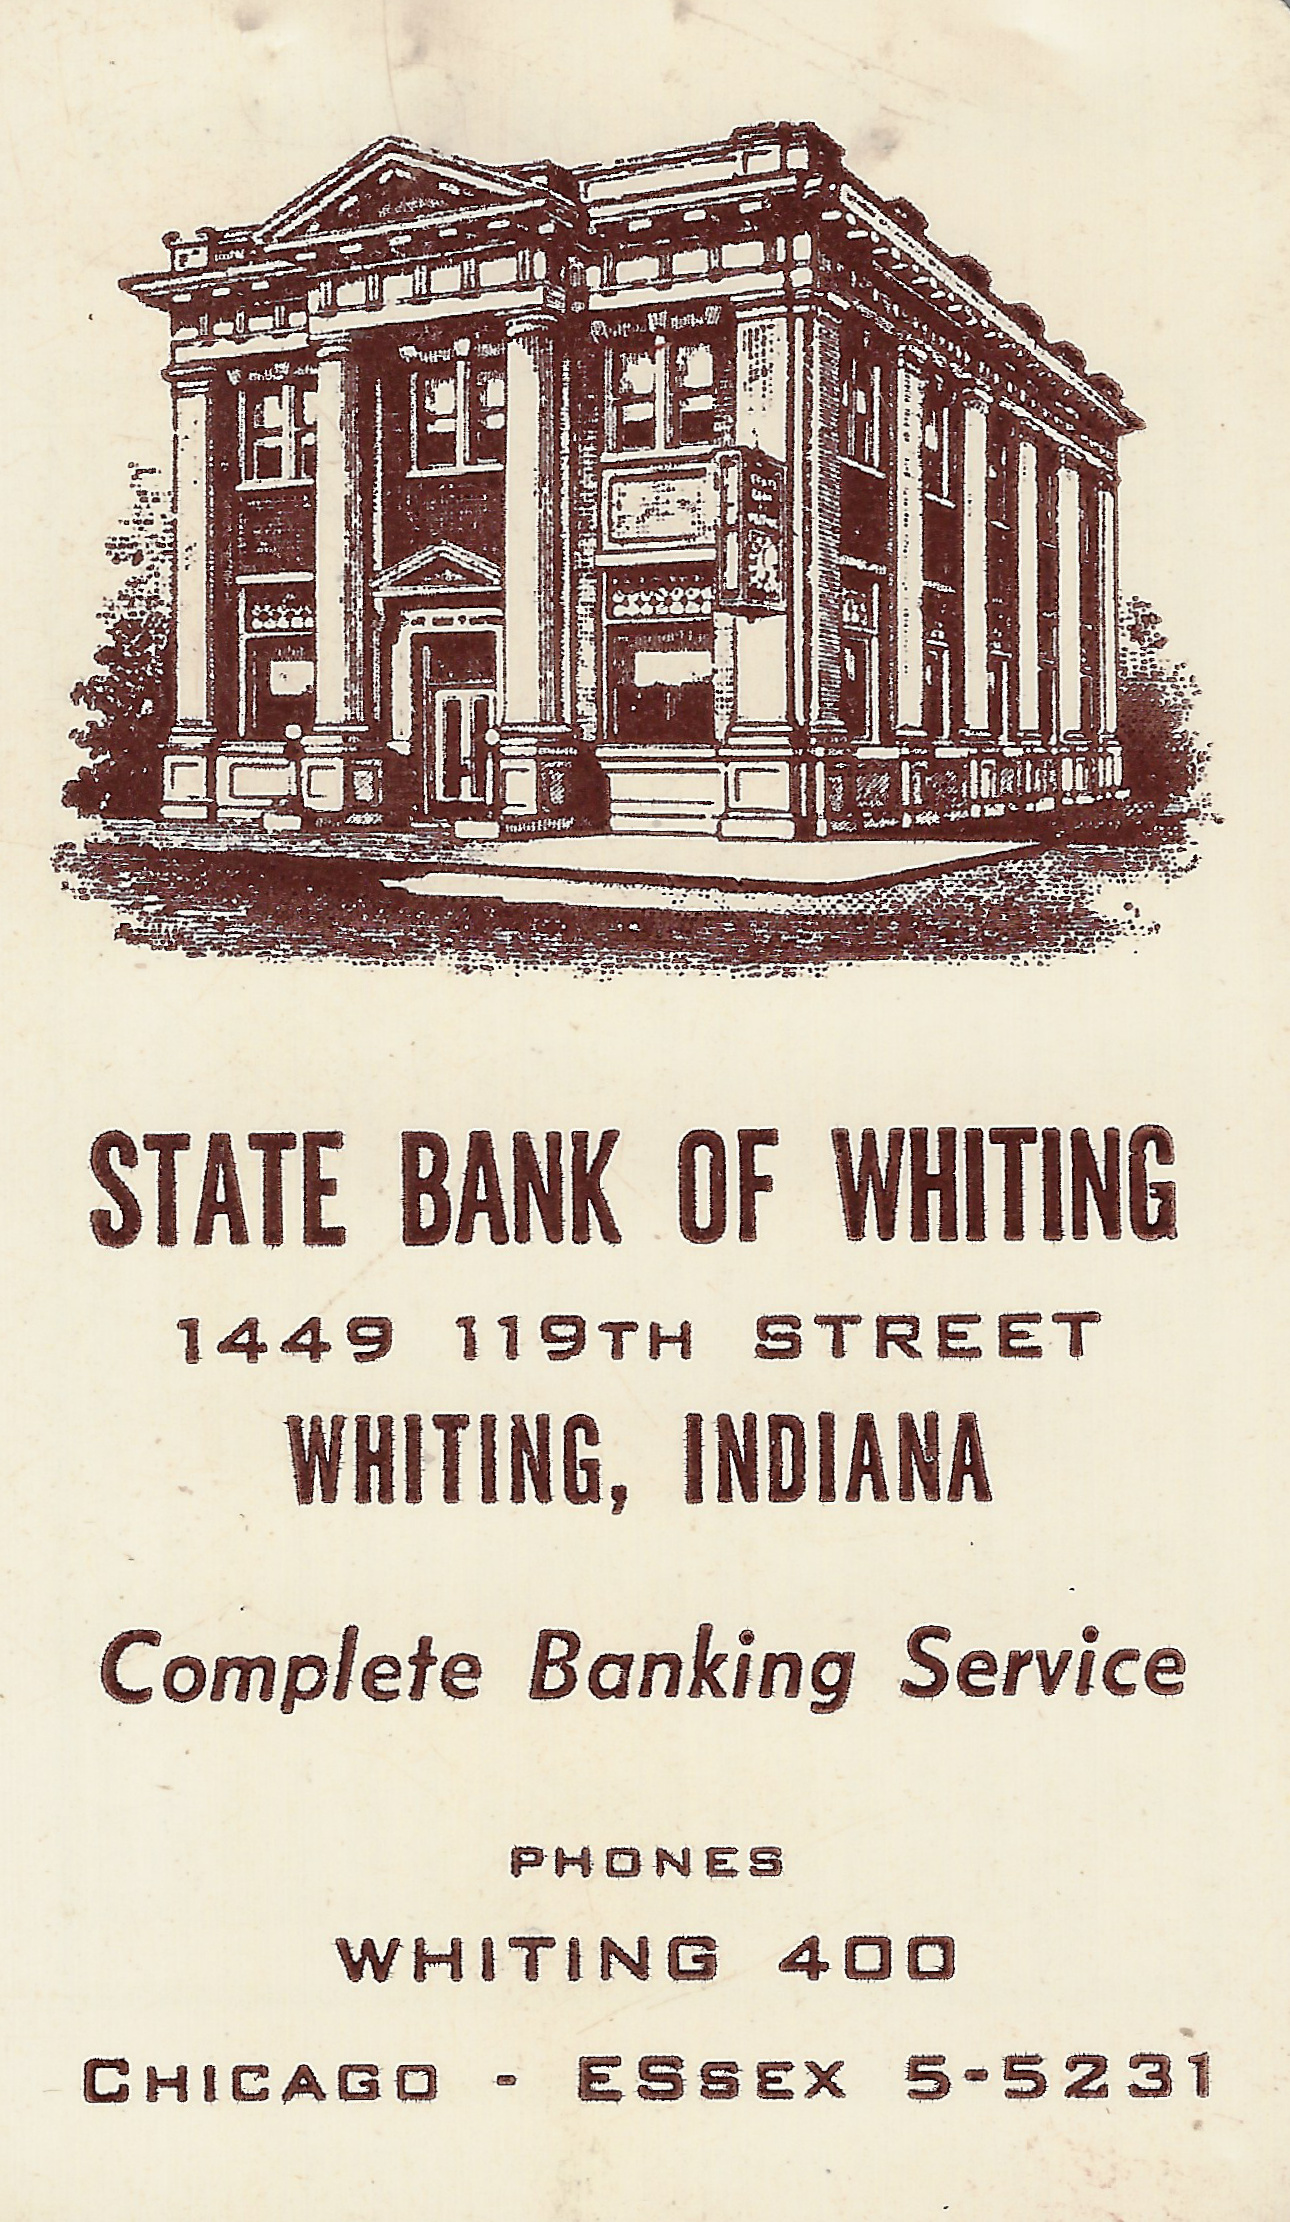 The State Banks of Whiting often used its building as an image in its promotional pieces, as can be seen in this pocket calendar from 1957.